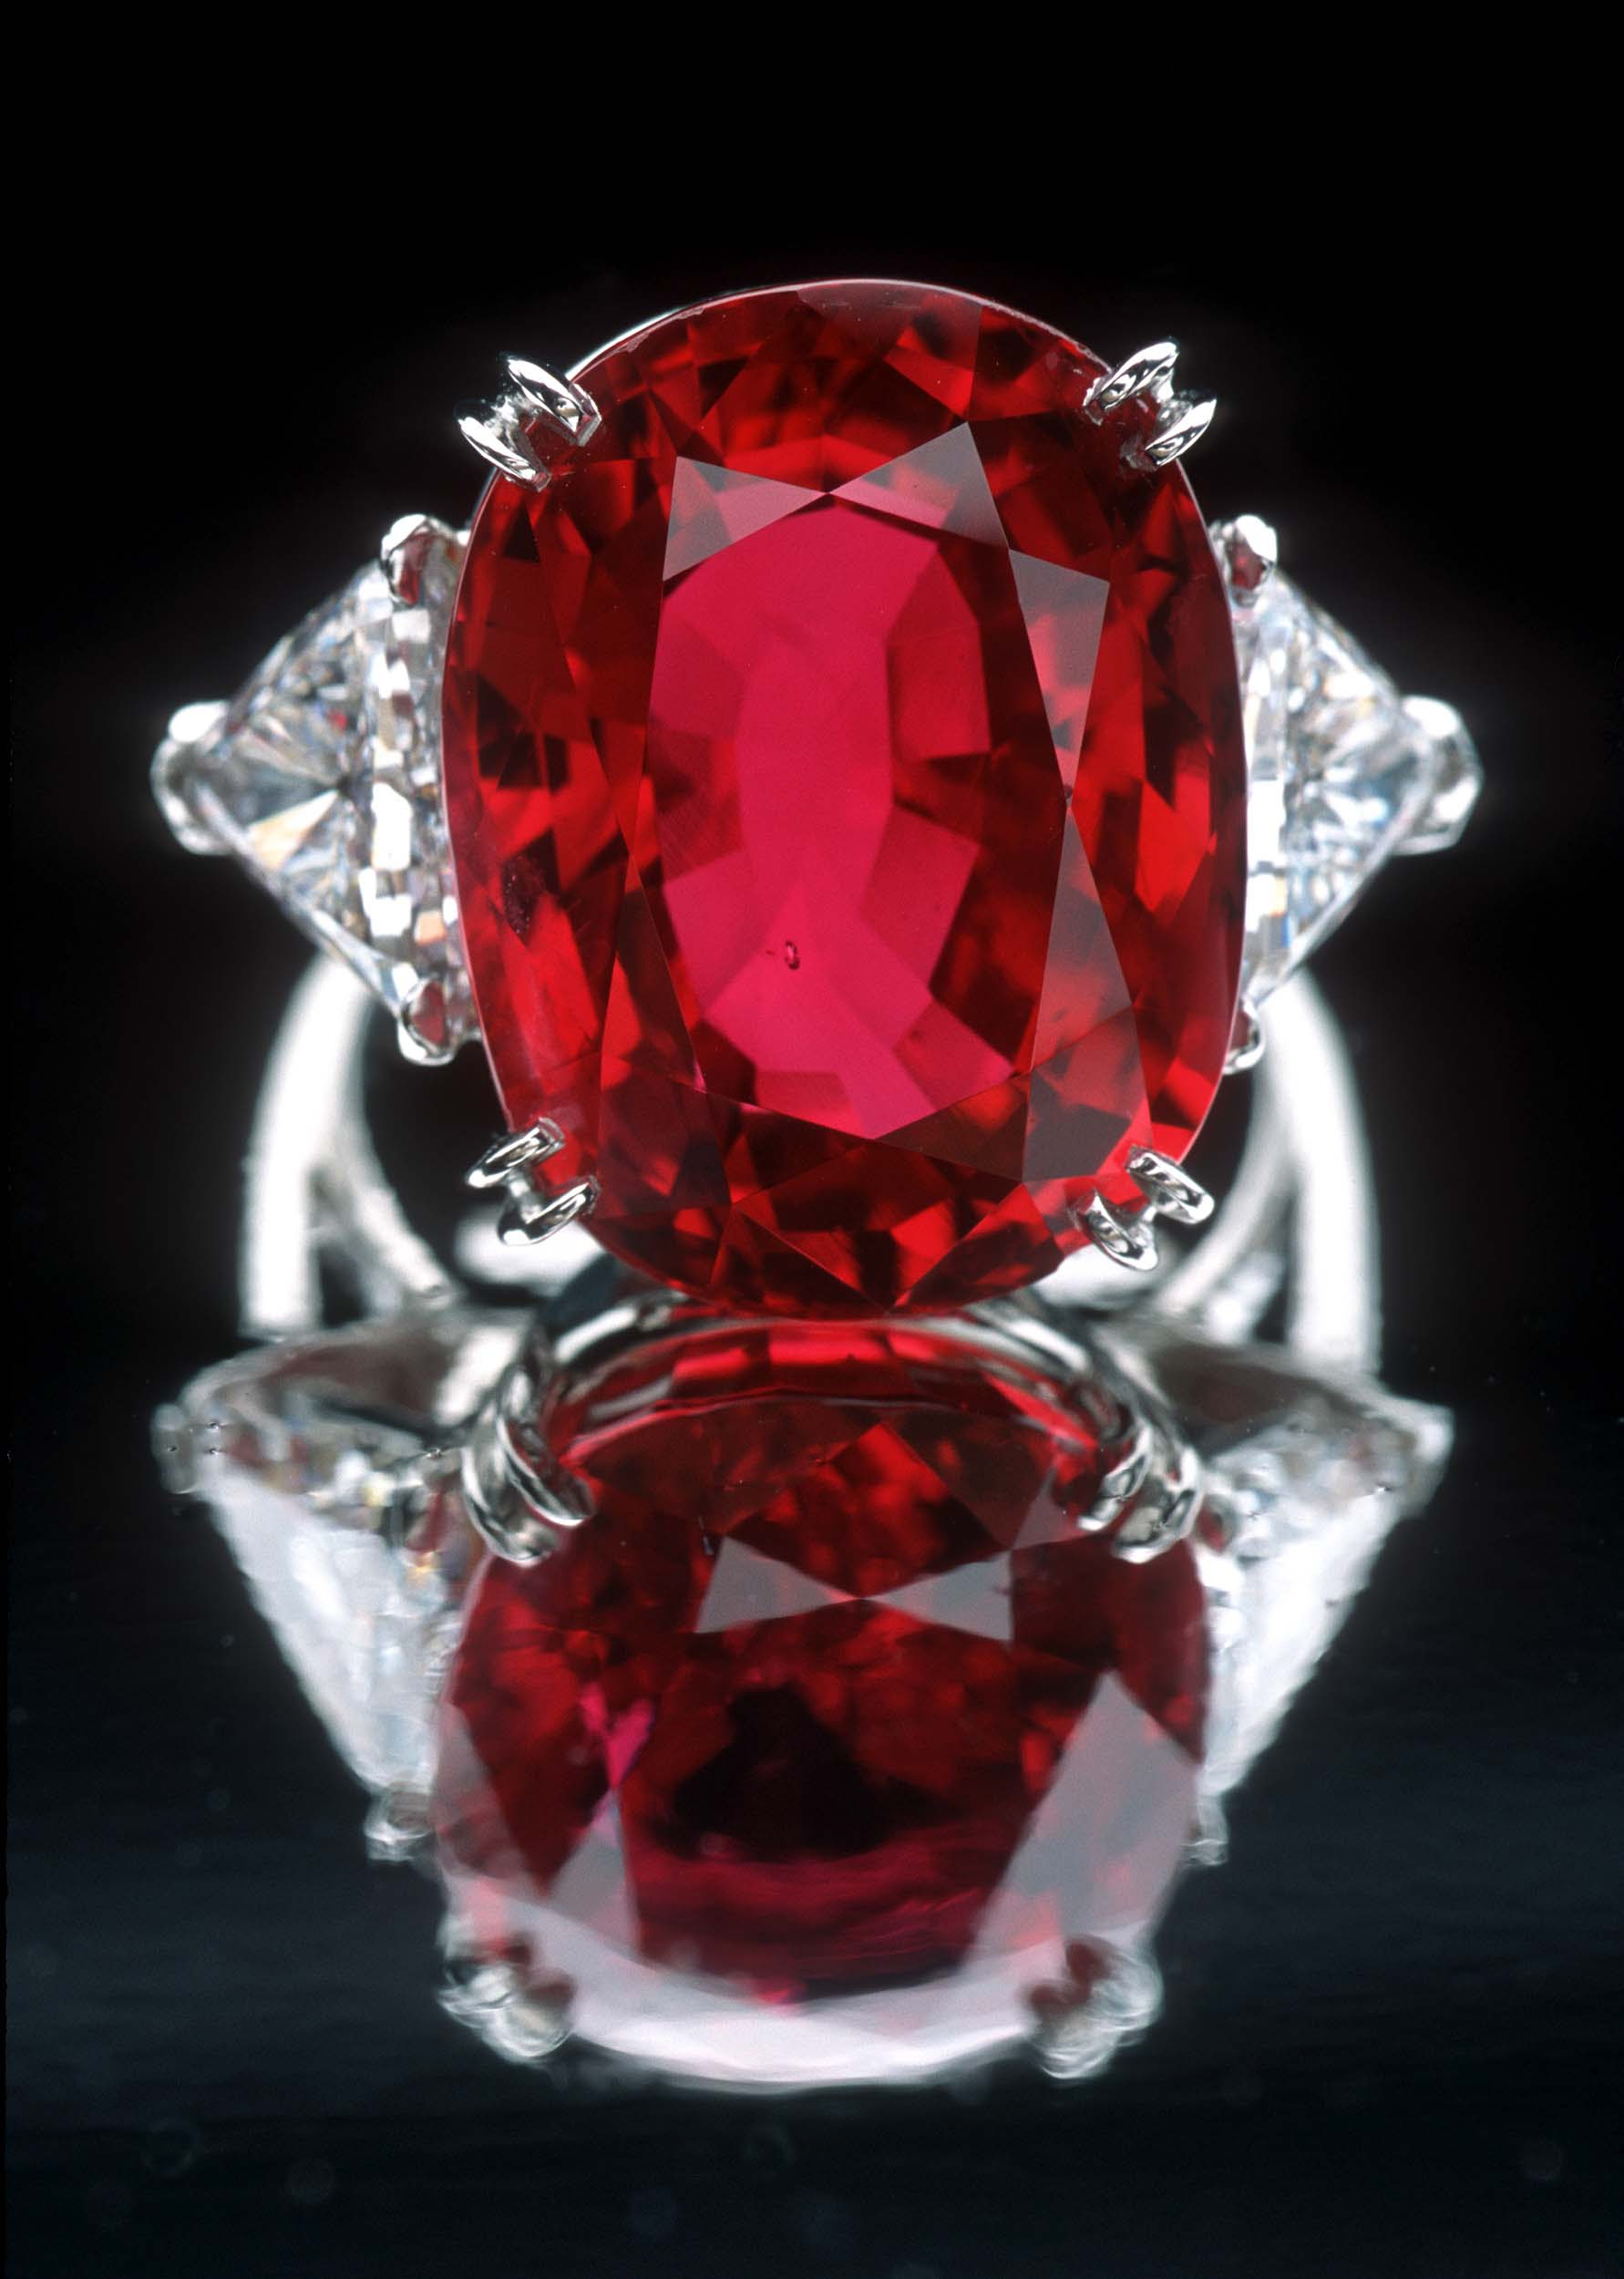 Trigonal Ruby ( Corundum) - Gem Resource International